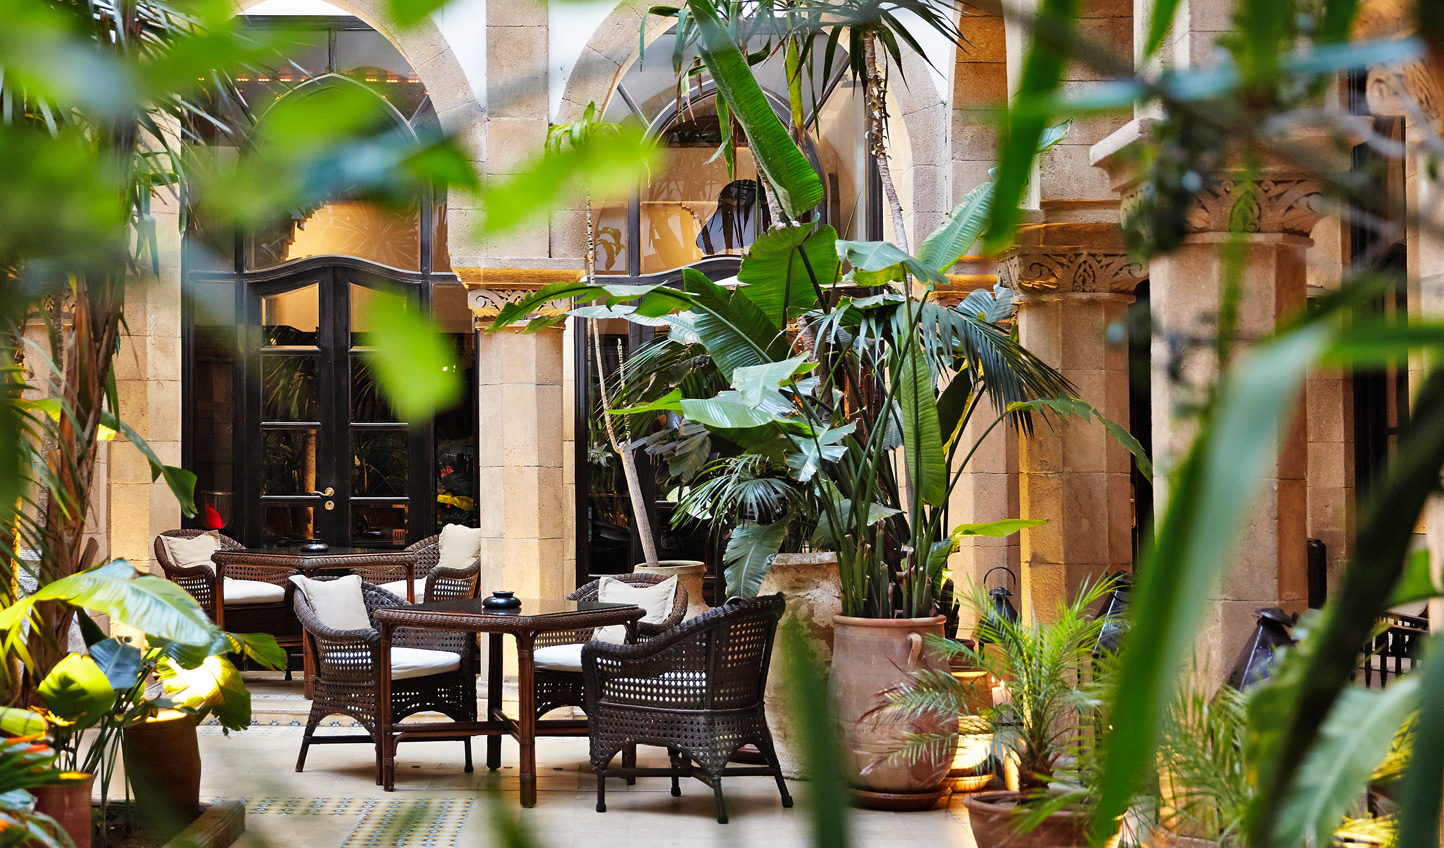 Enjoy your breakfast amid the verdant greenery of the courtyard